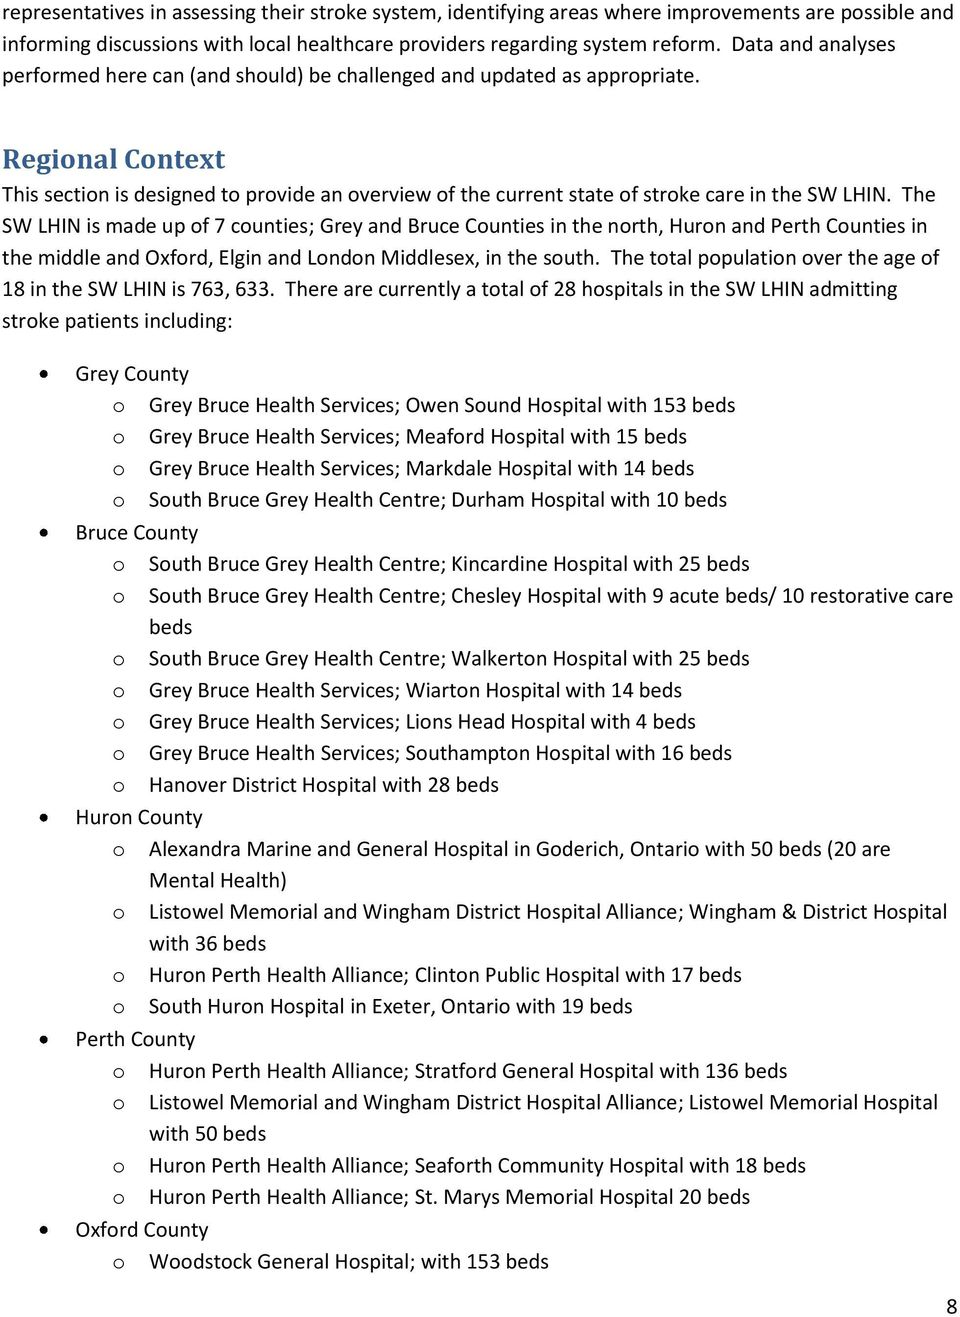 Regional Context This section is designed to provide an overview of the current state of stroke care in the SW LHIN.